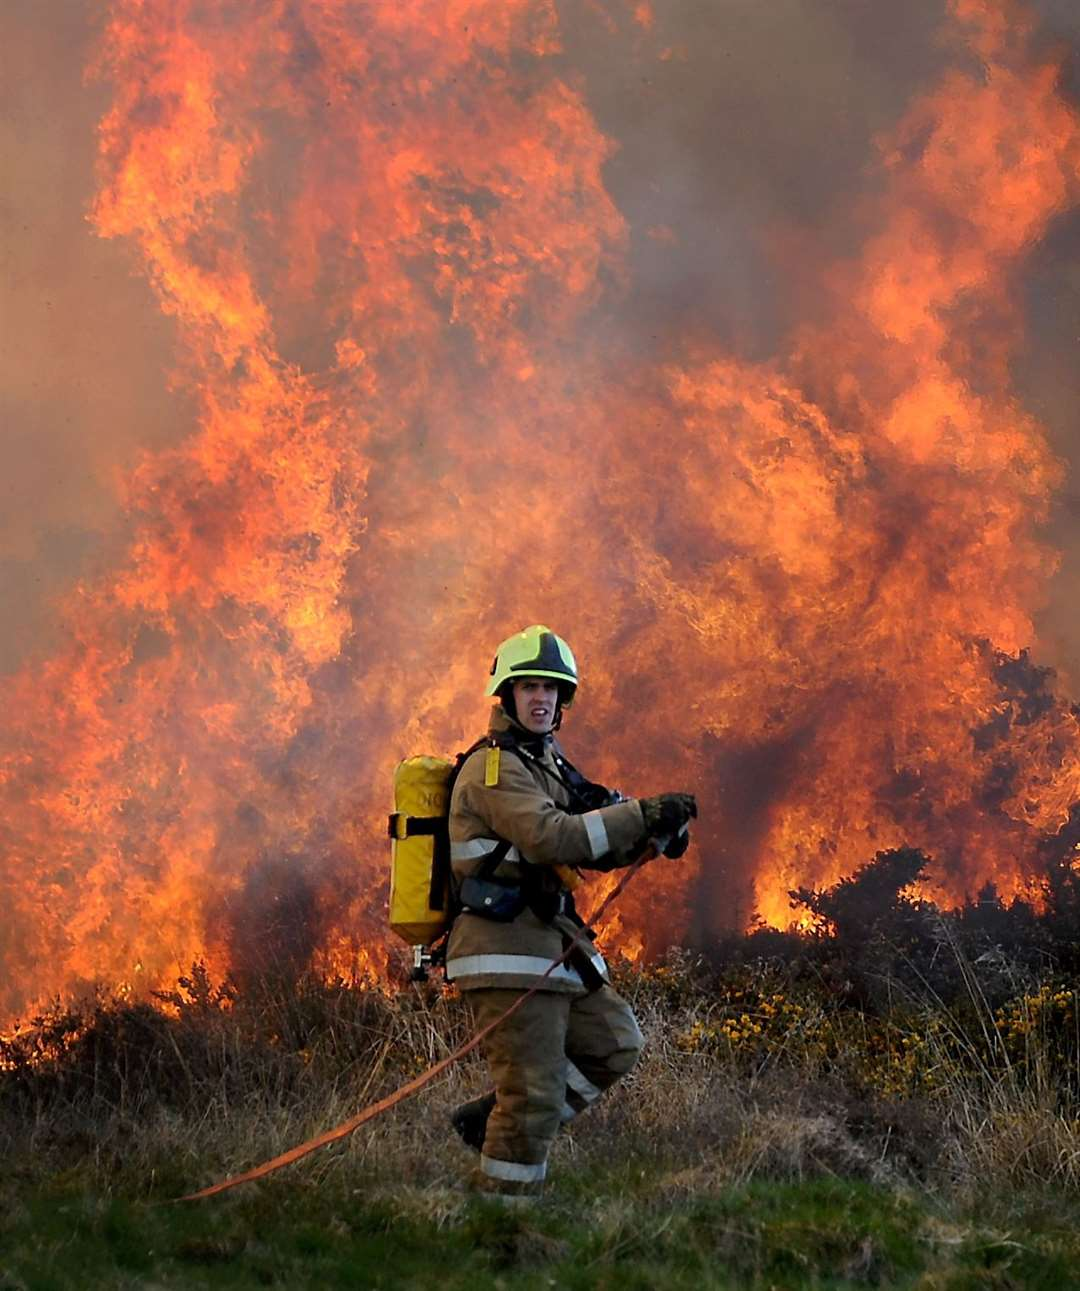 Highland firefighter in action tackling a wildfire. Picture: Gary Anthony.